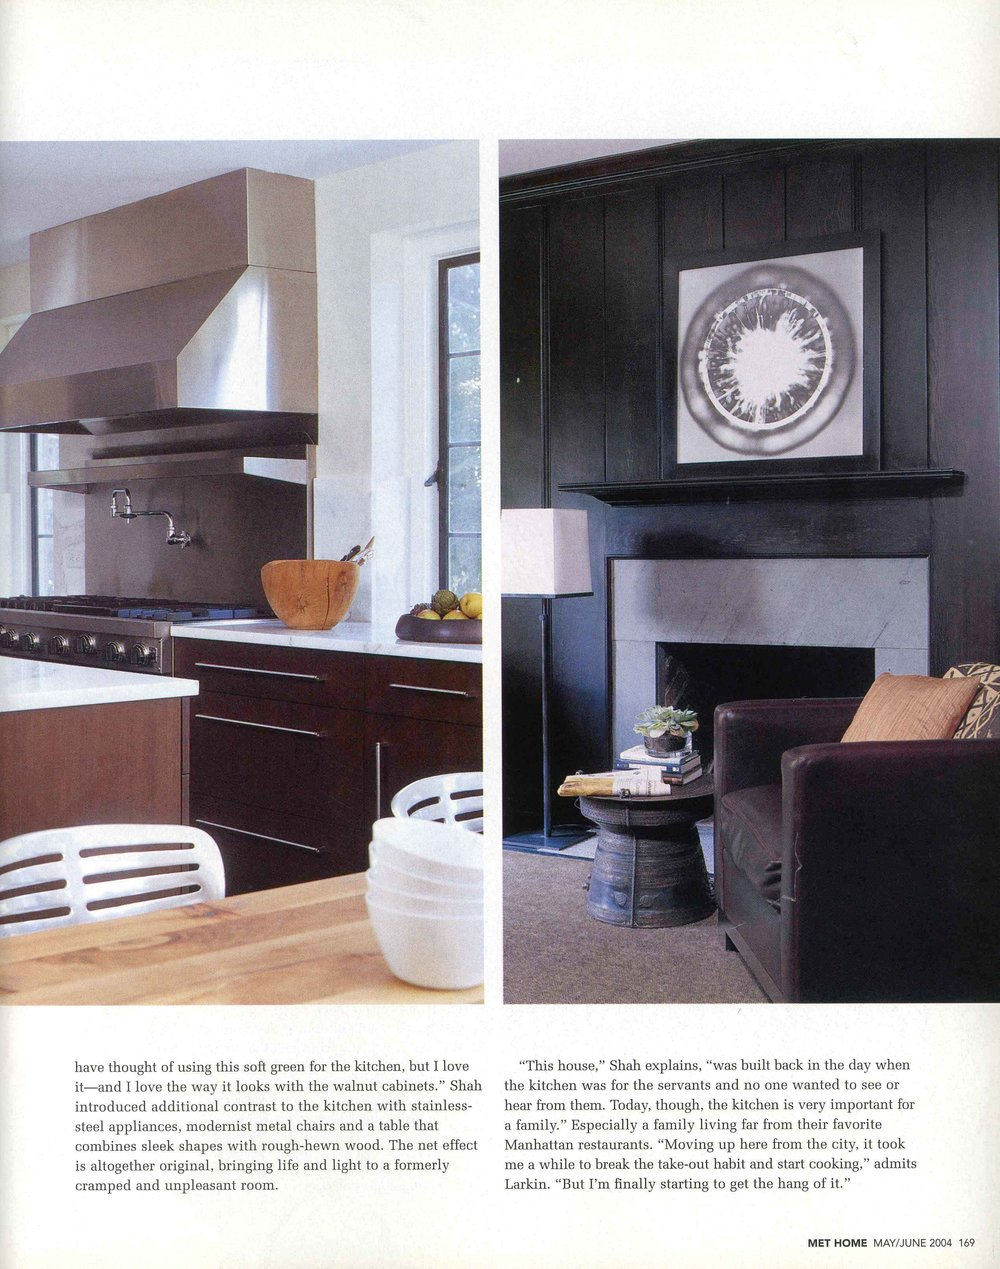 Met Home_May-June 04_Simon House_Full Article_Page_7.jpg